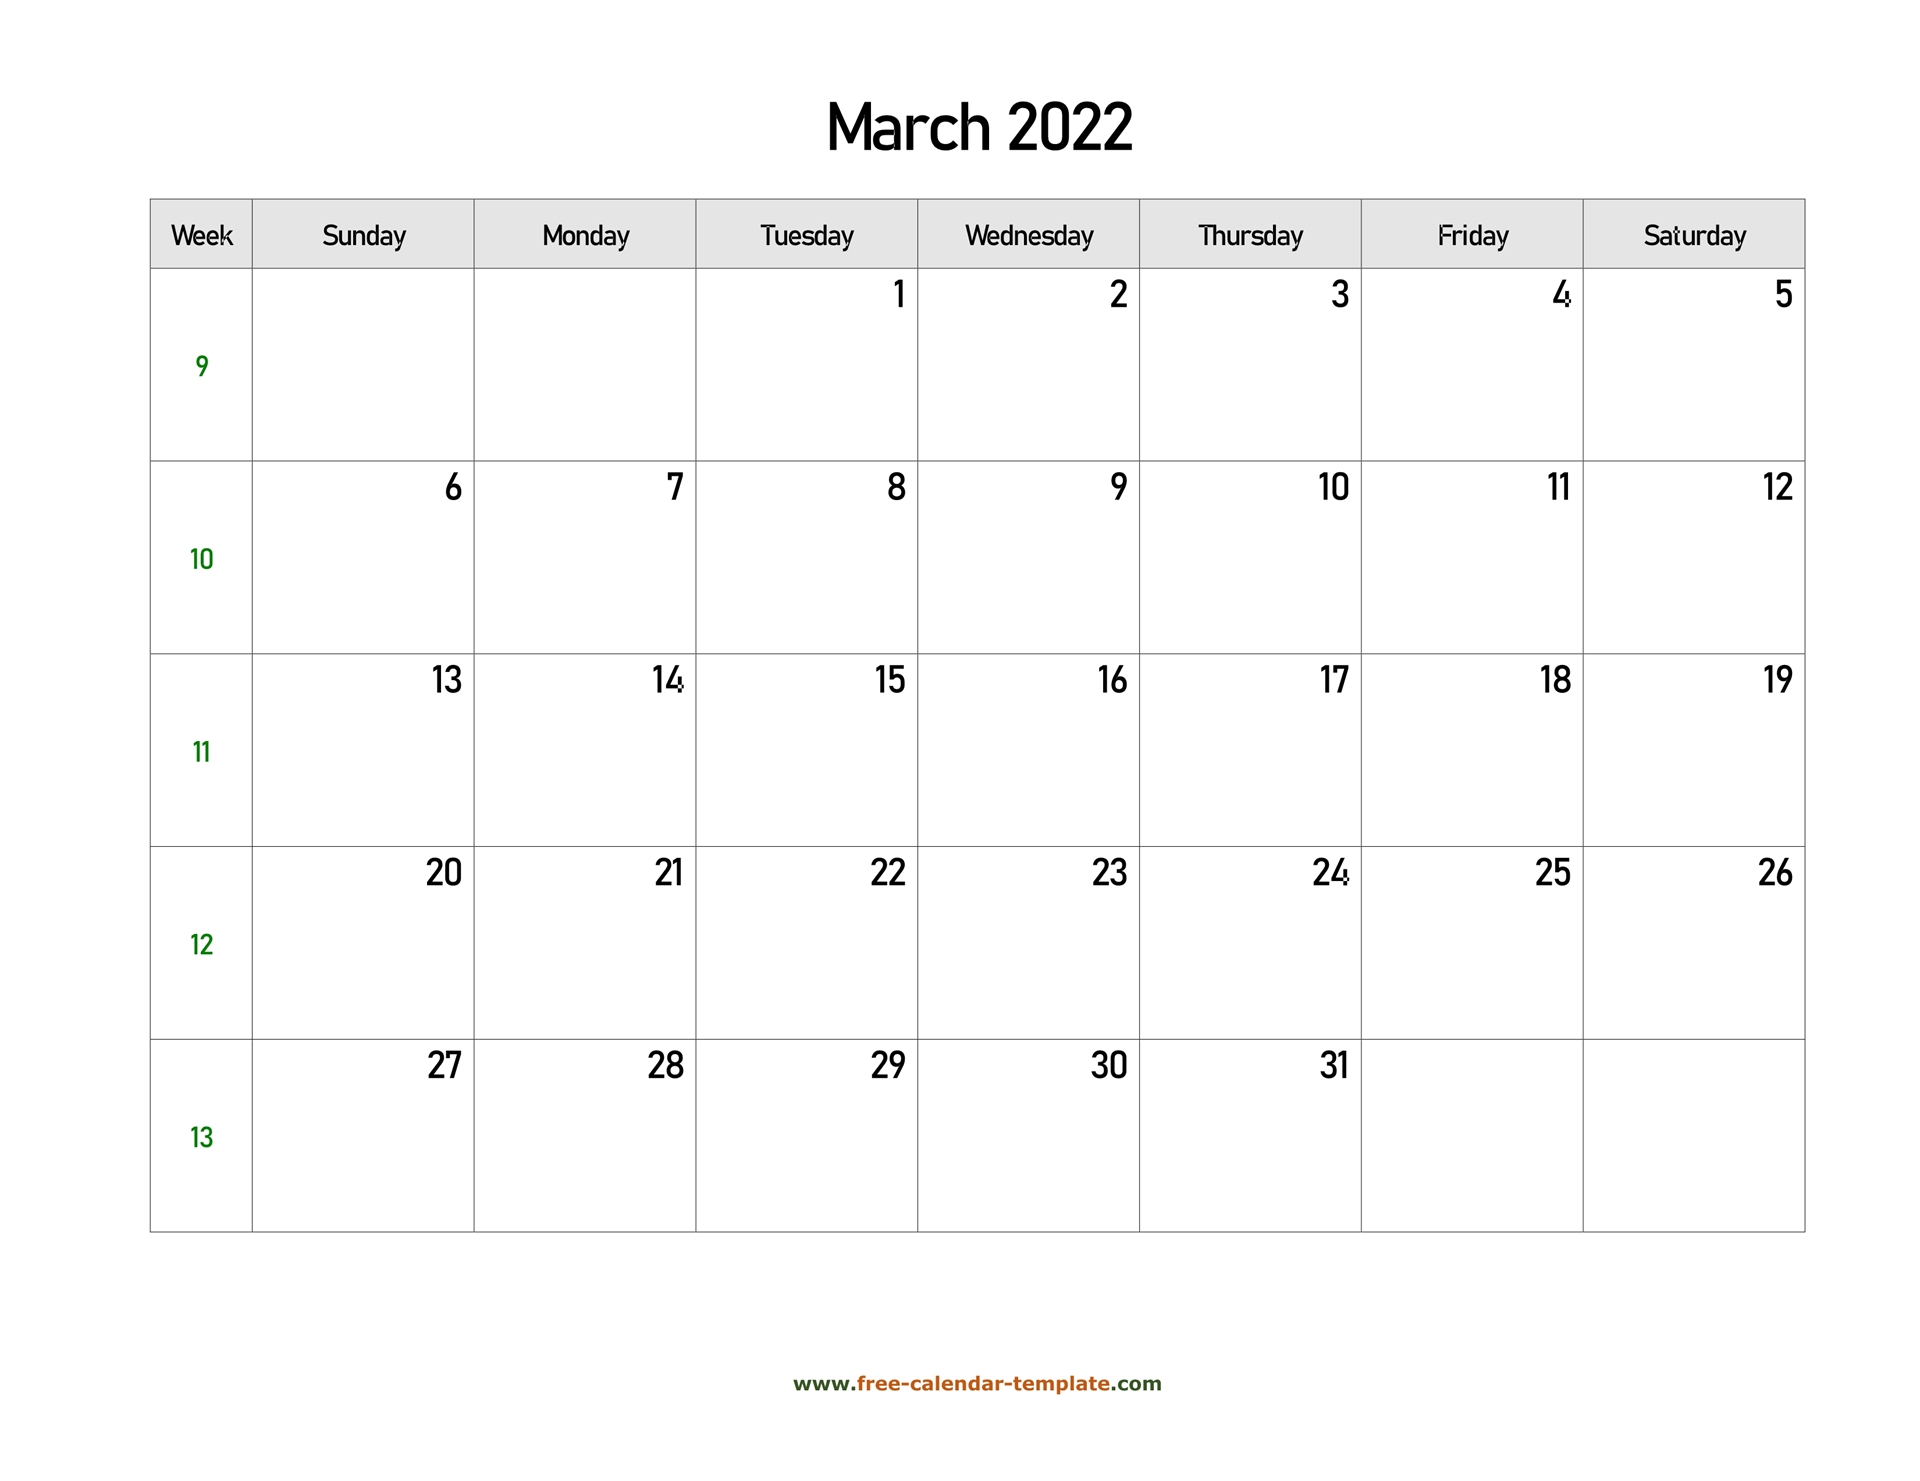 Free 2022 Calendar Blank March Template (Horizontal Intended For 2022 Calendar March And April